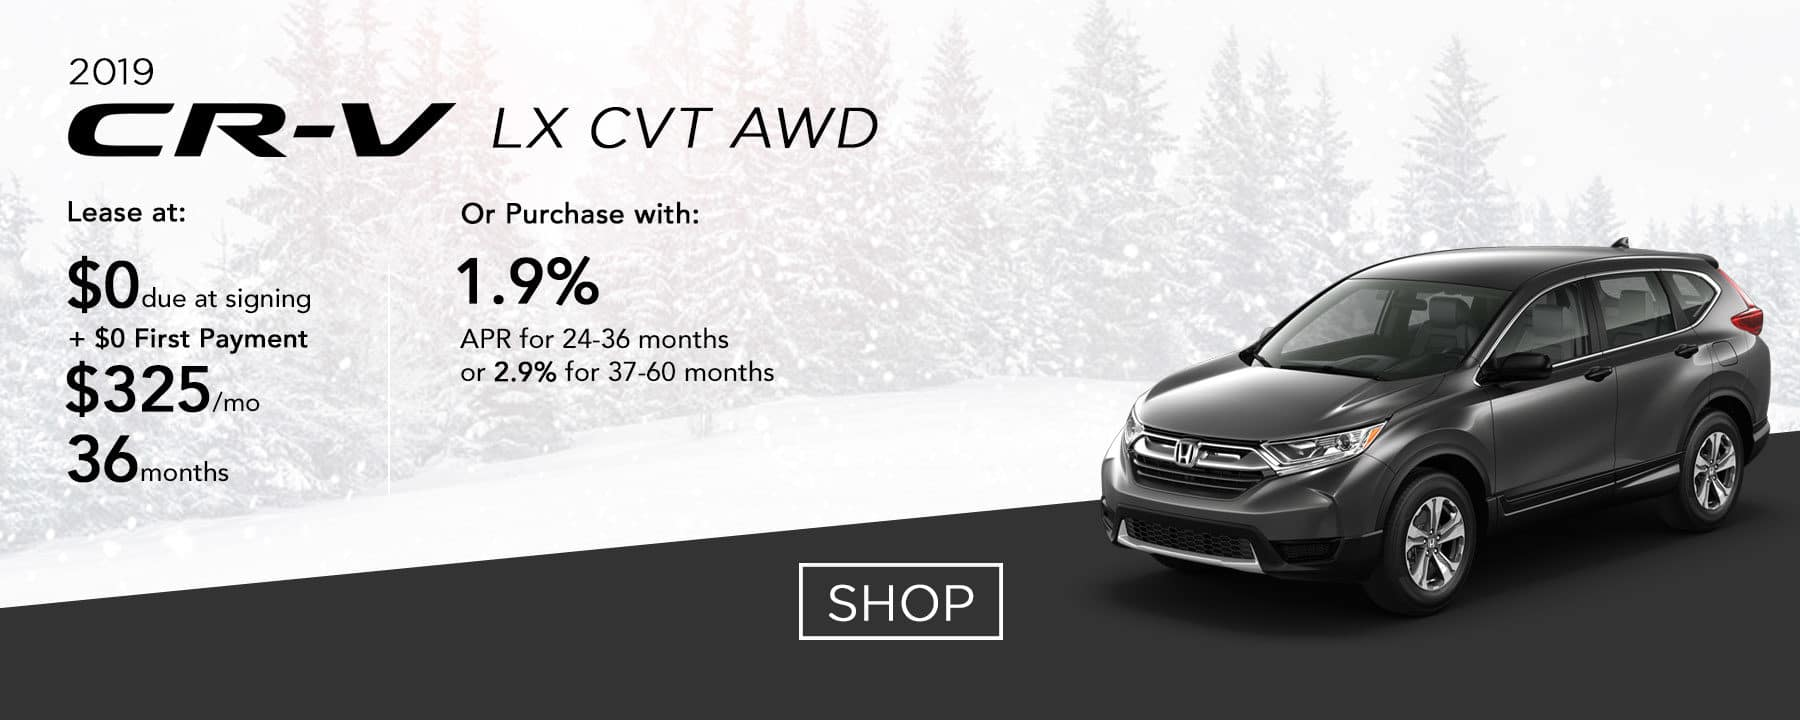 Lease a 2019 CR-V LX CVT AWD for $325 per month or purchase with 1.9% APR up to 36 months